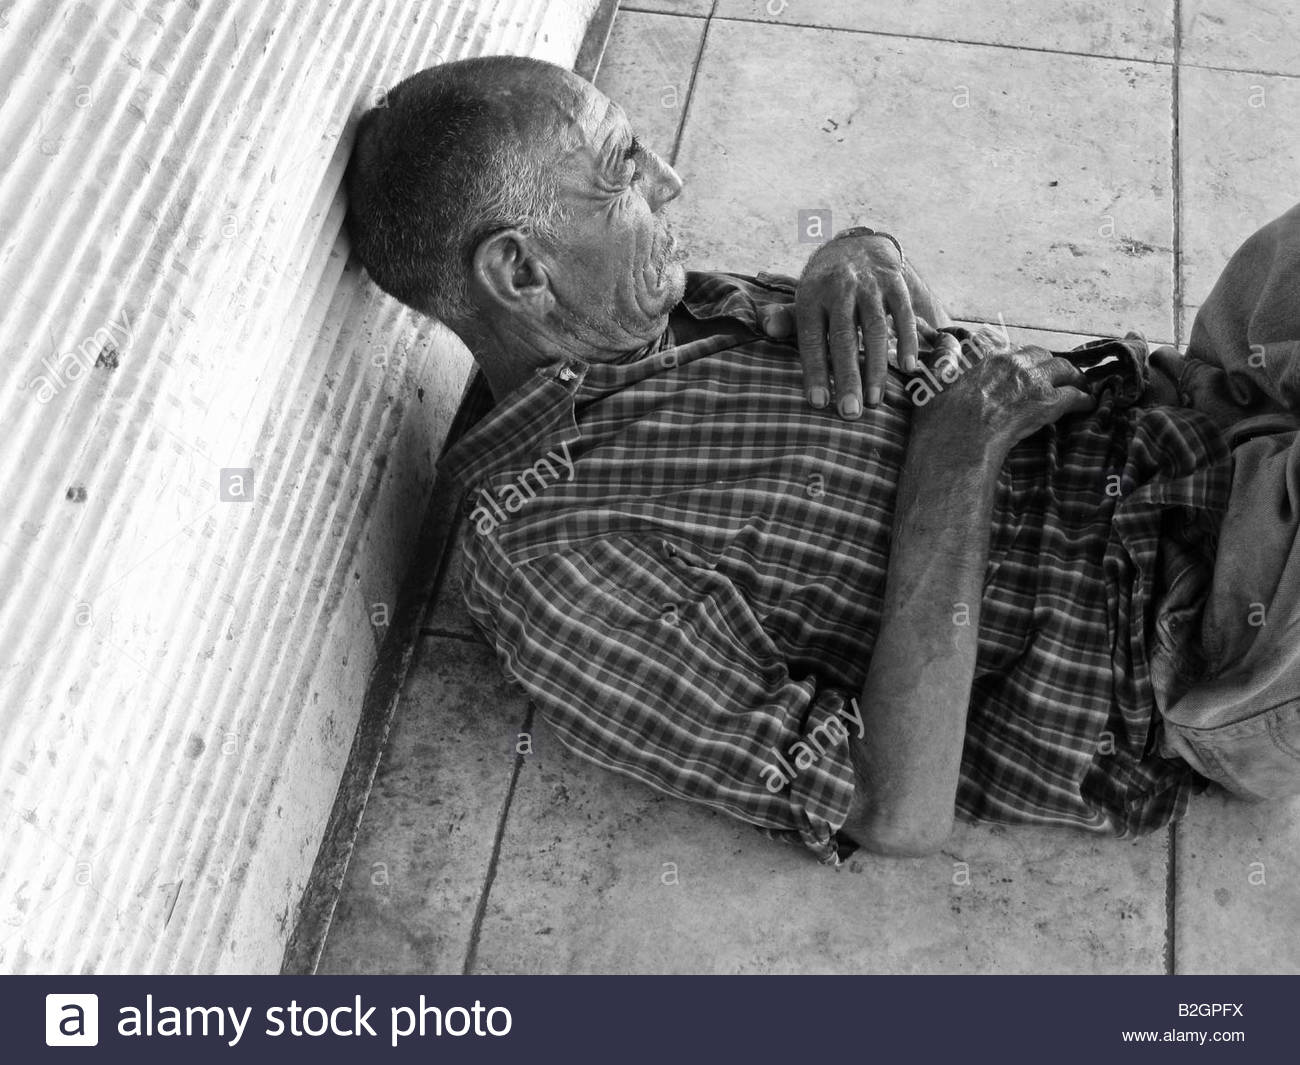 Homeless person sleeping in the old central bus station area in Tel Aviv, Israel - Stock Image